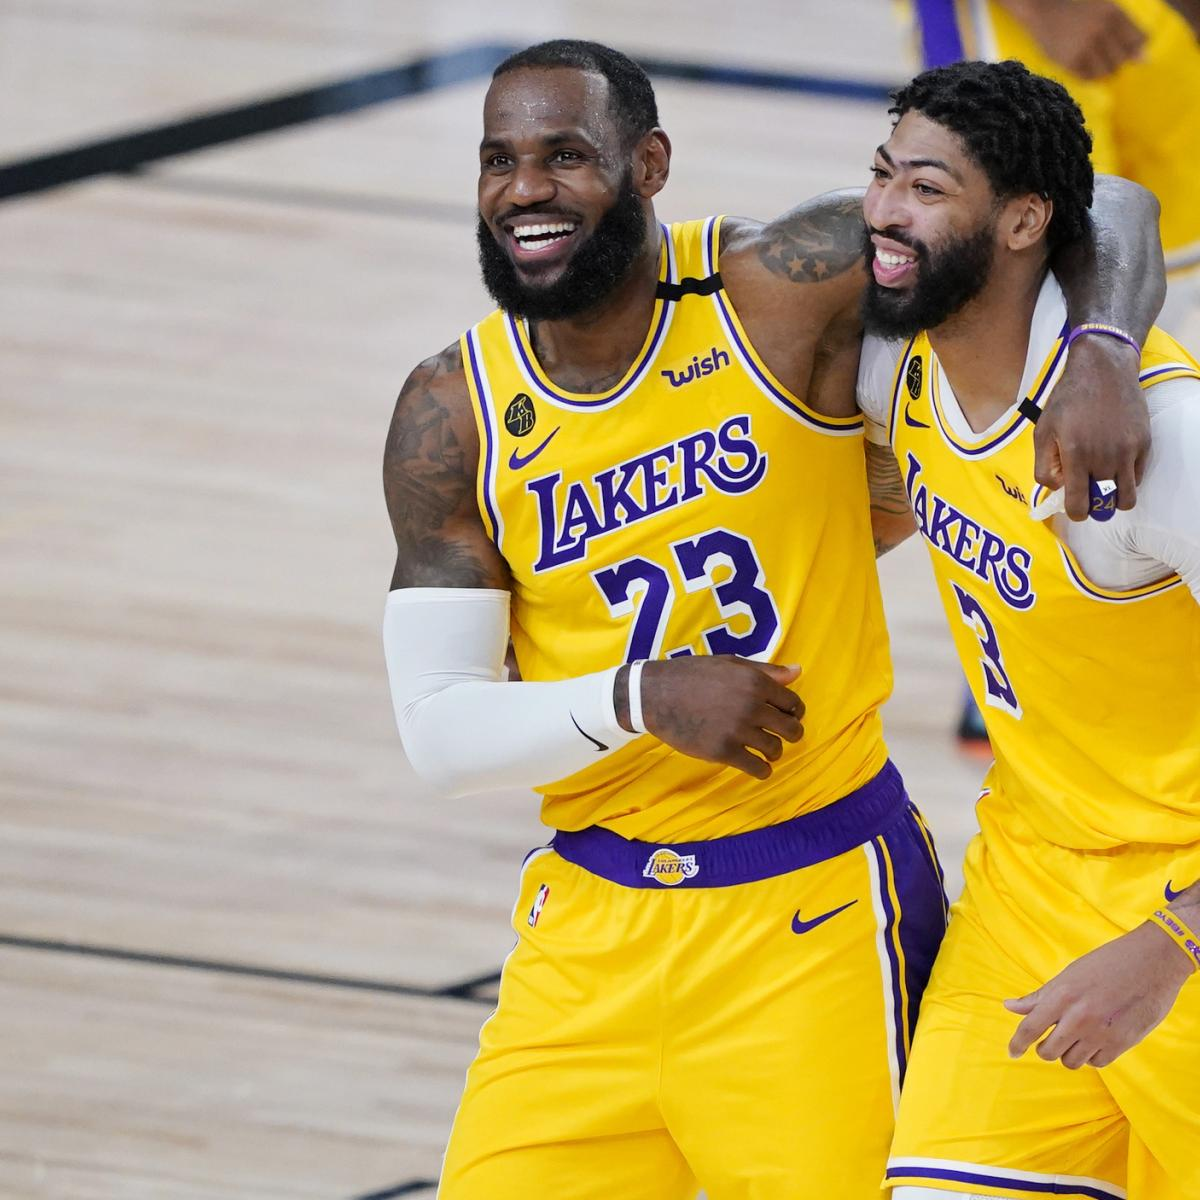 NBA Playoff Schedule 2020: Round-by-Round Dates, TV and Live Stream Guide